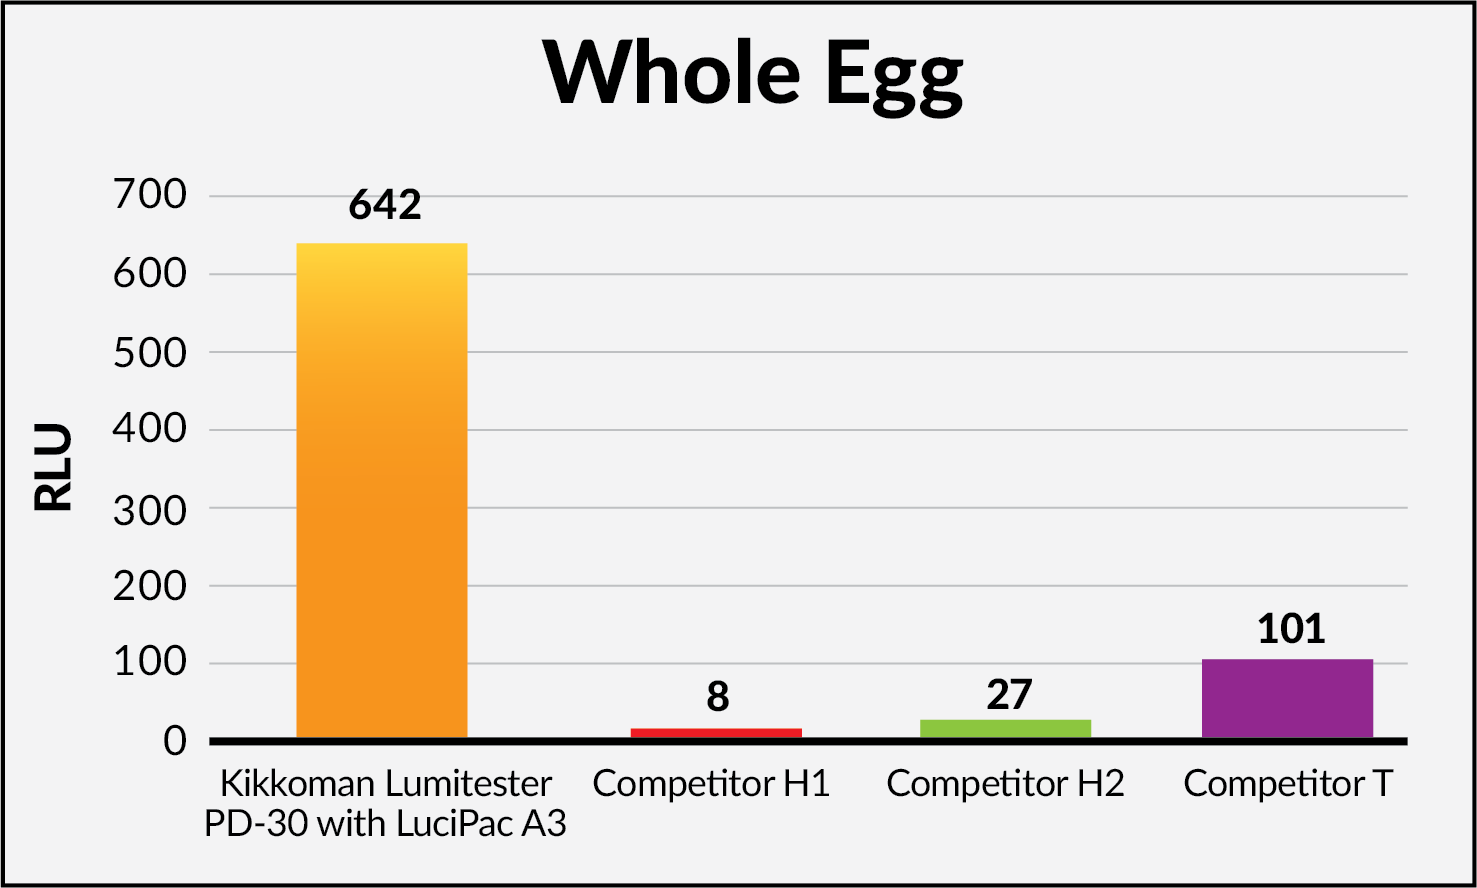 The LuciPac A3 showed superior sensitivity and stability for detection of food residues compared to competitive ATP tests. ATP in meat, seafood, egg and fruit is decomposed into ADP and AMP during processing increasing levels of ADP and AMP. LuciPac A3 is, therefore, able to detect food residues where other products almost cannot.